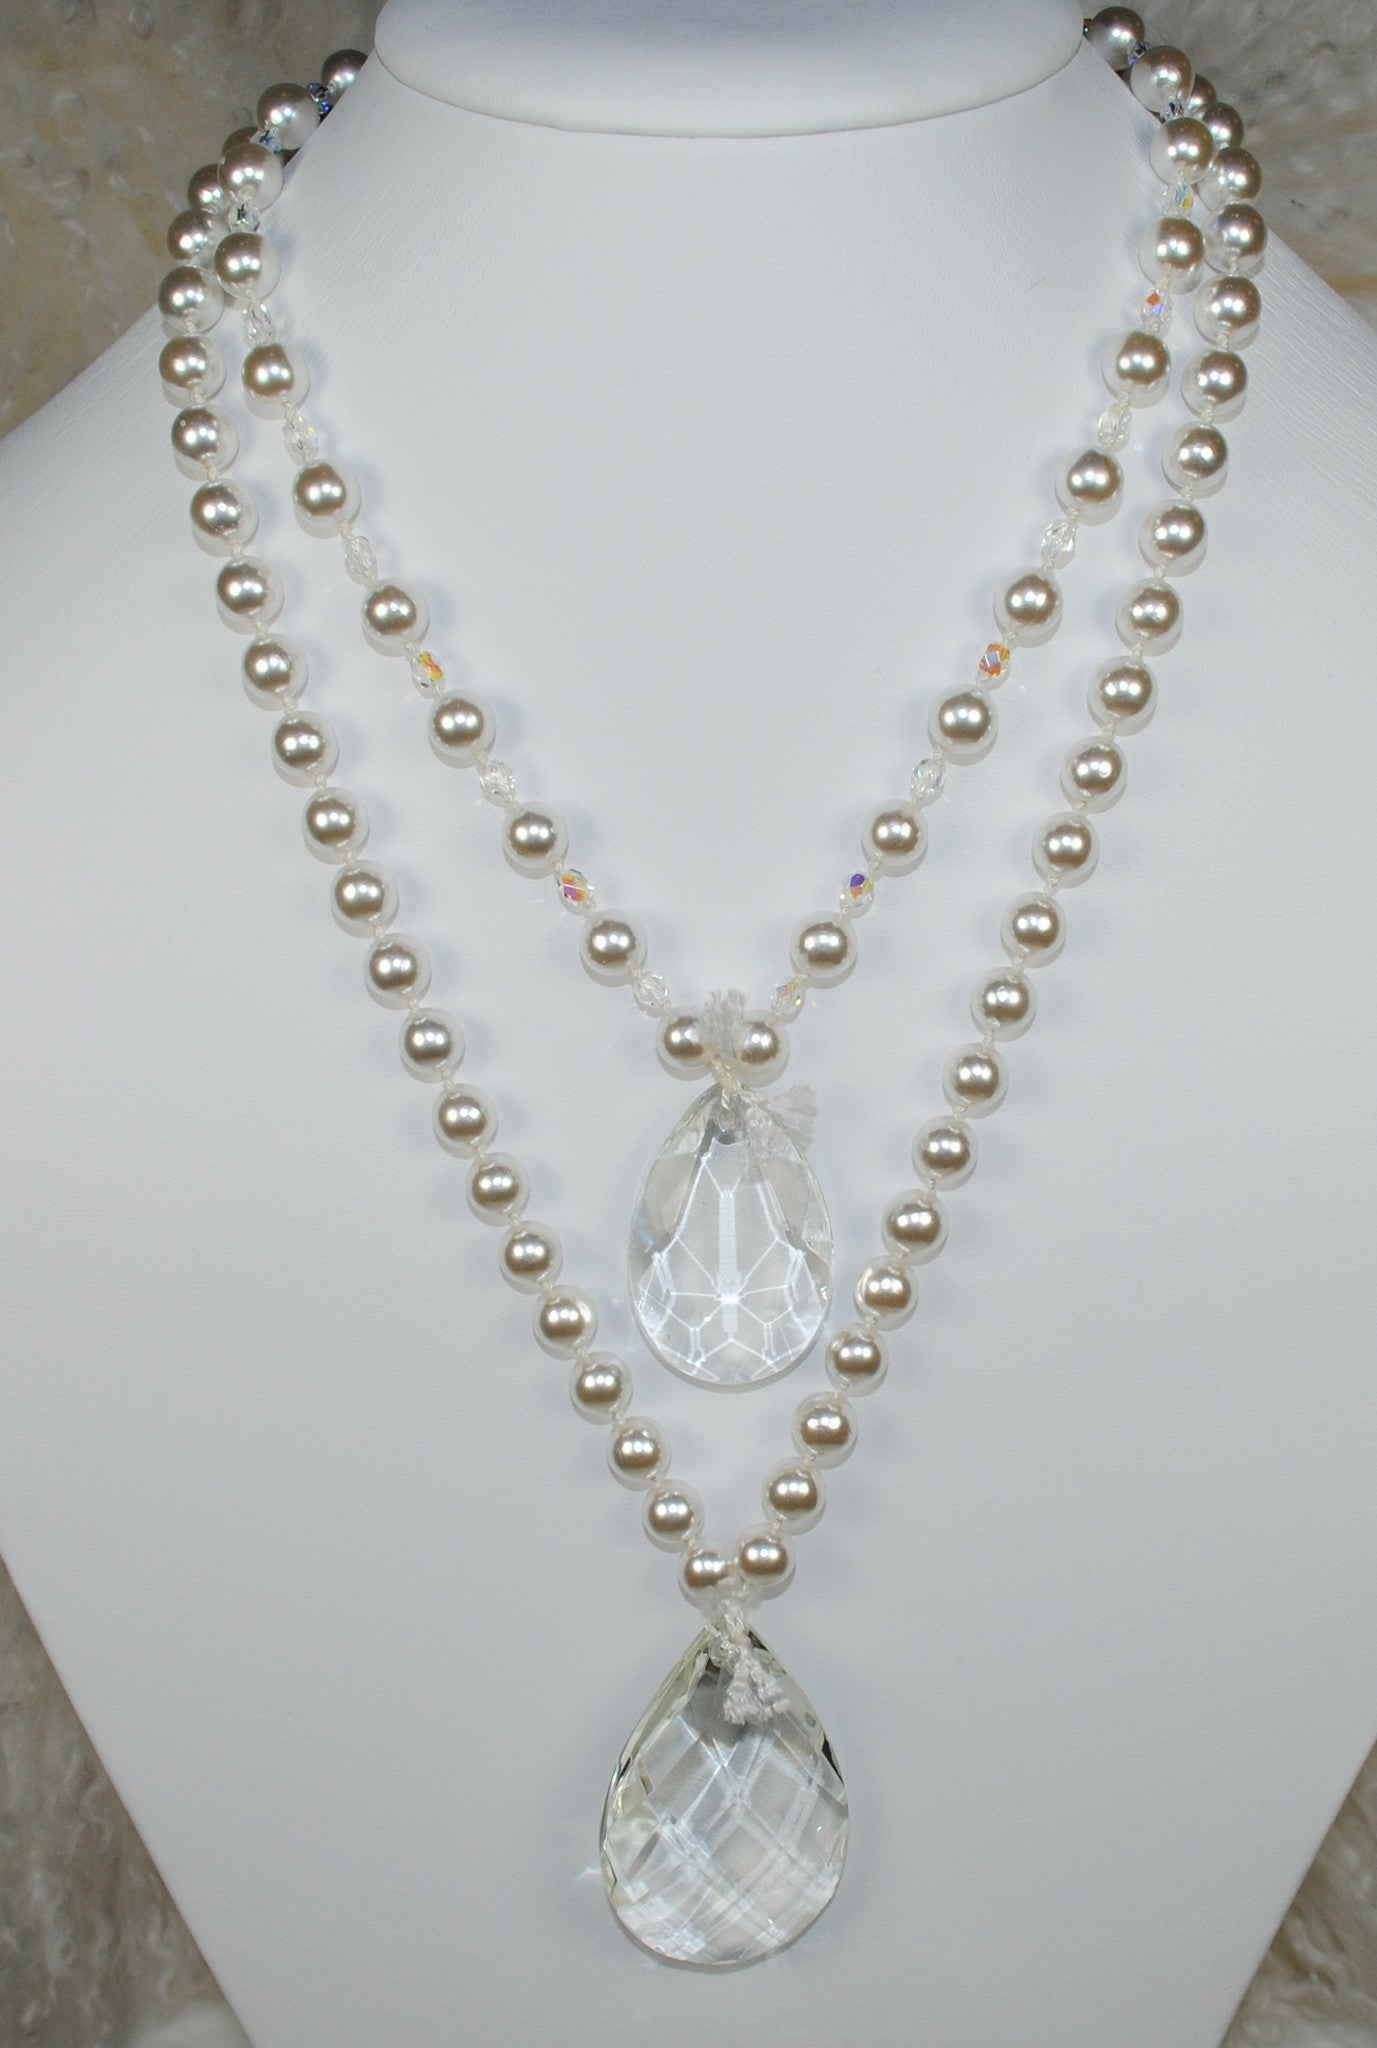 Double Strand Pearl Necklace w/ Chandelier Drops